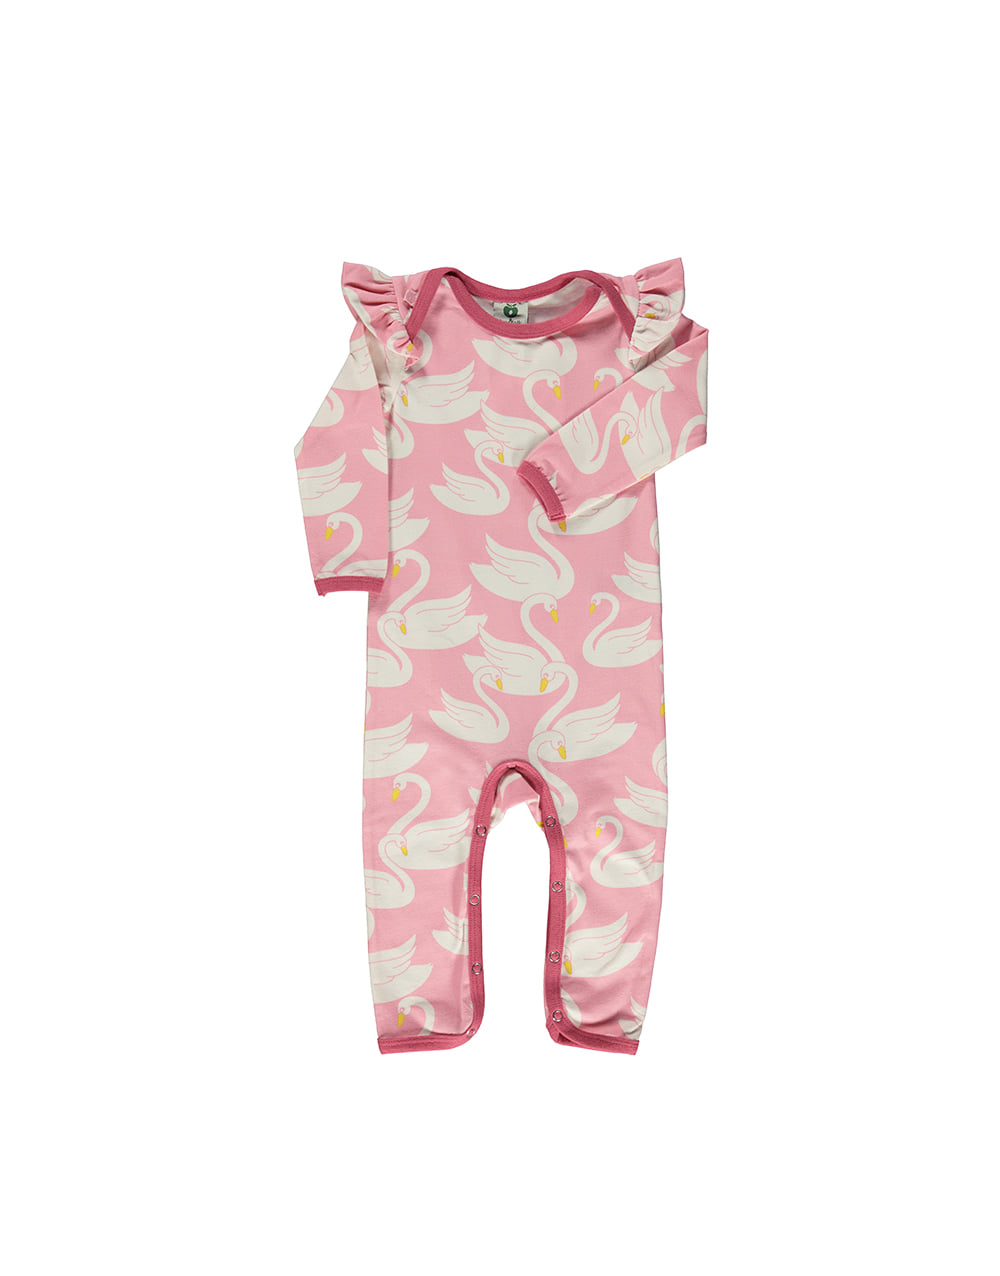 SMAFOLK  Suit with Swans   Sea pink